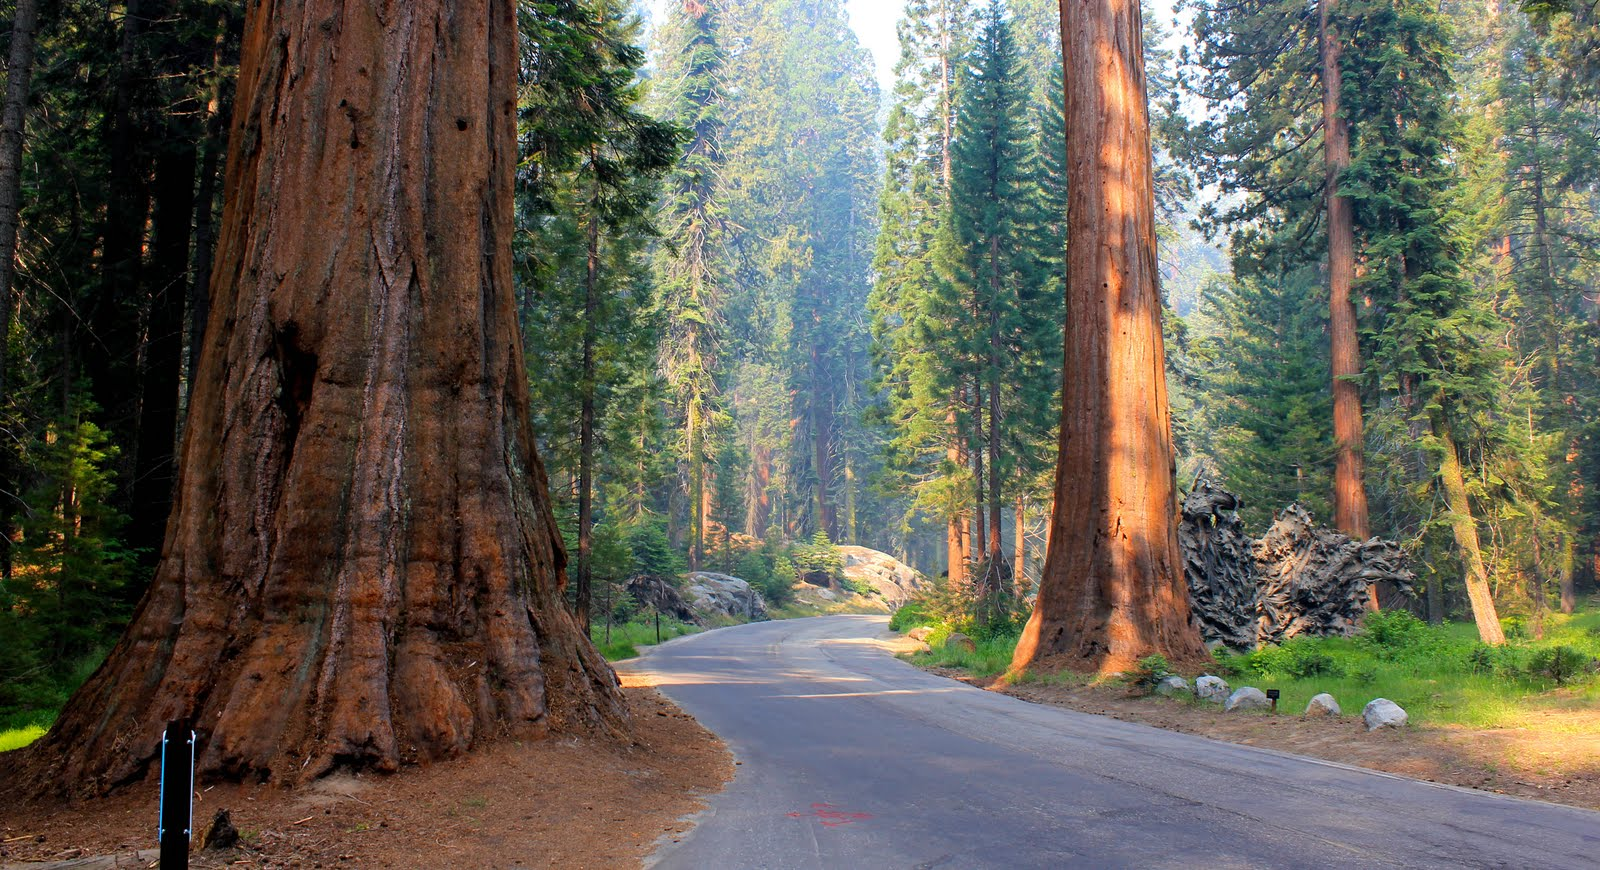 2011 – Le parc national Sequoia